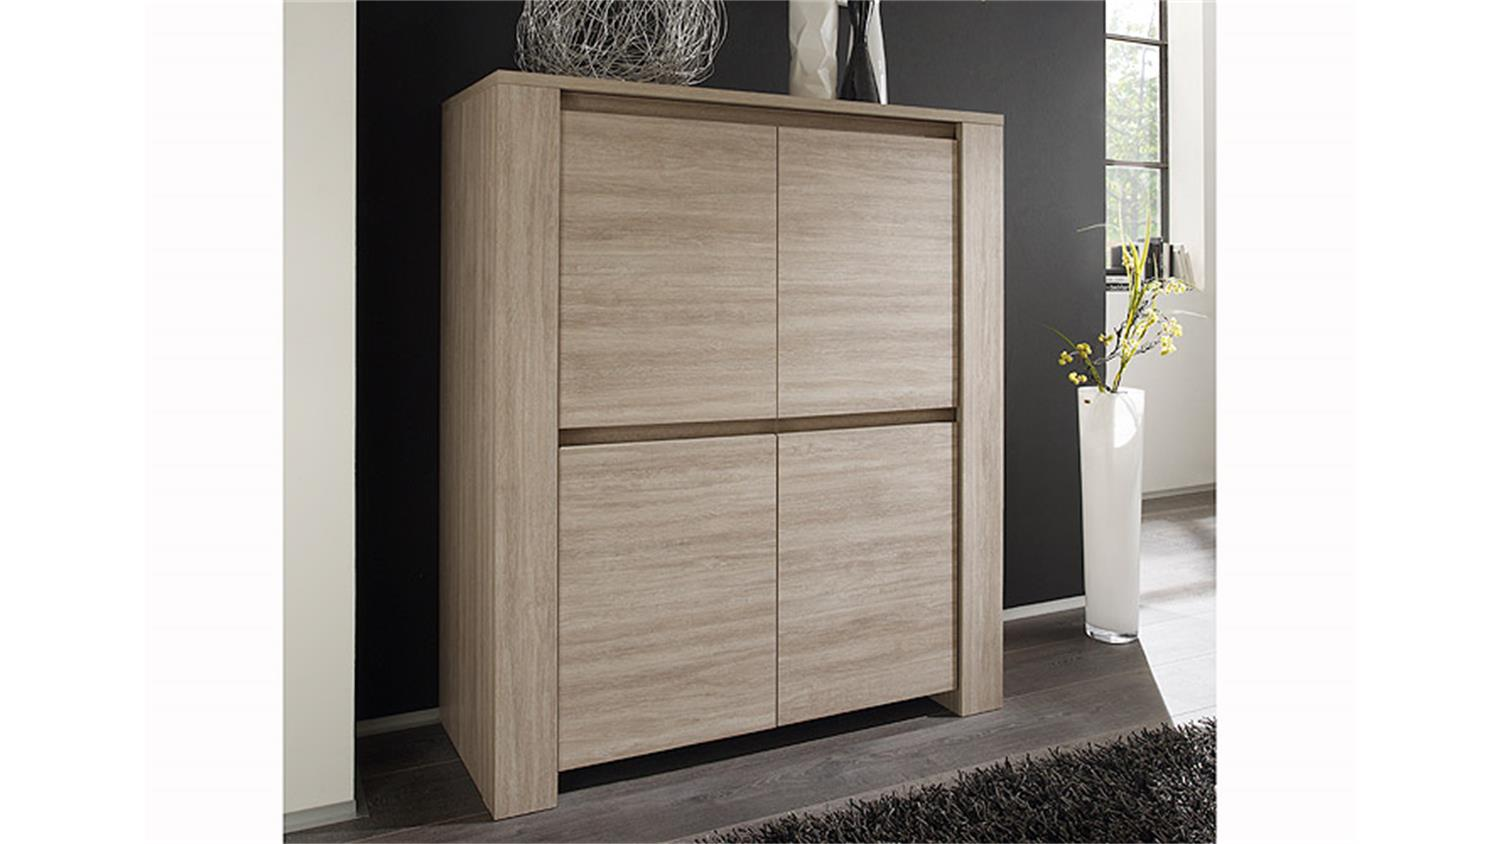 Highboard elba sideboard kommode in eiche gek lkt zweit rig - Castorama meuble de rangement ...